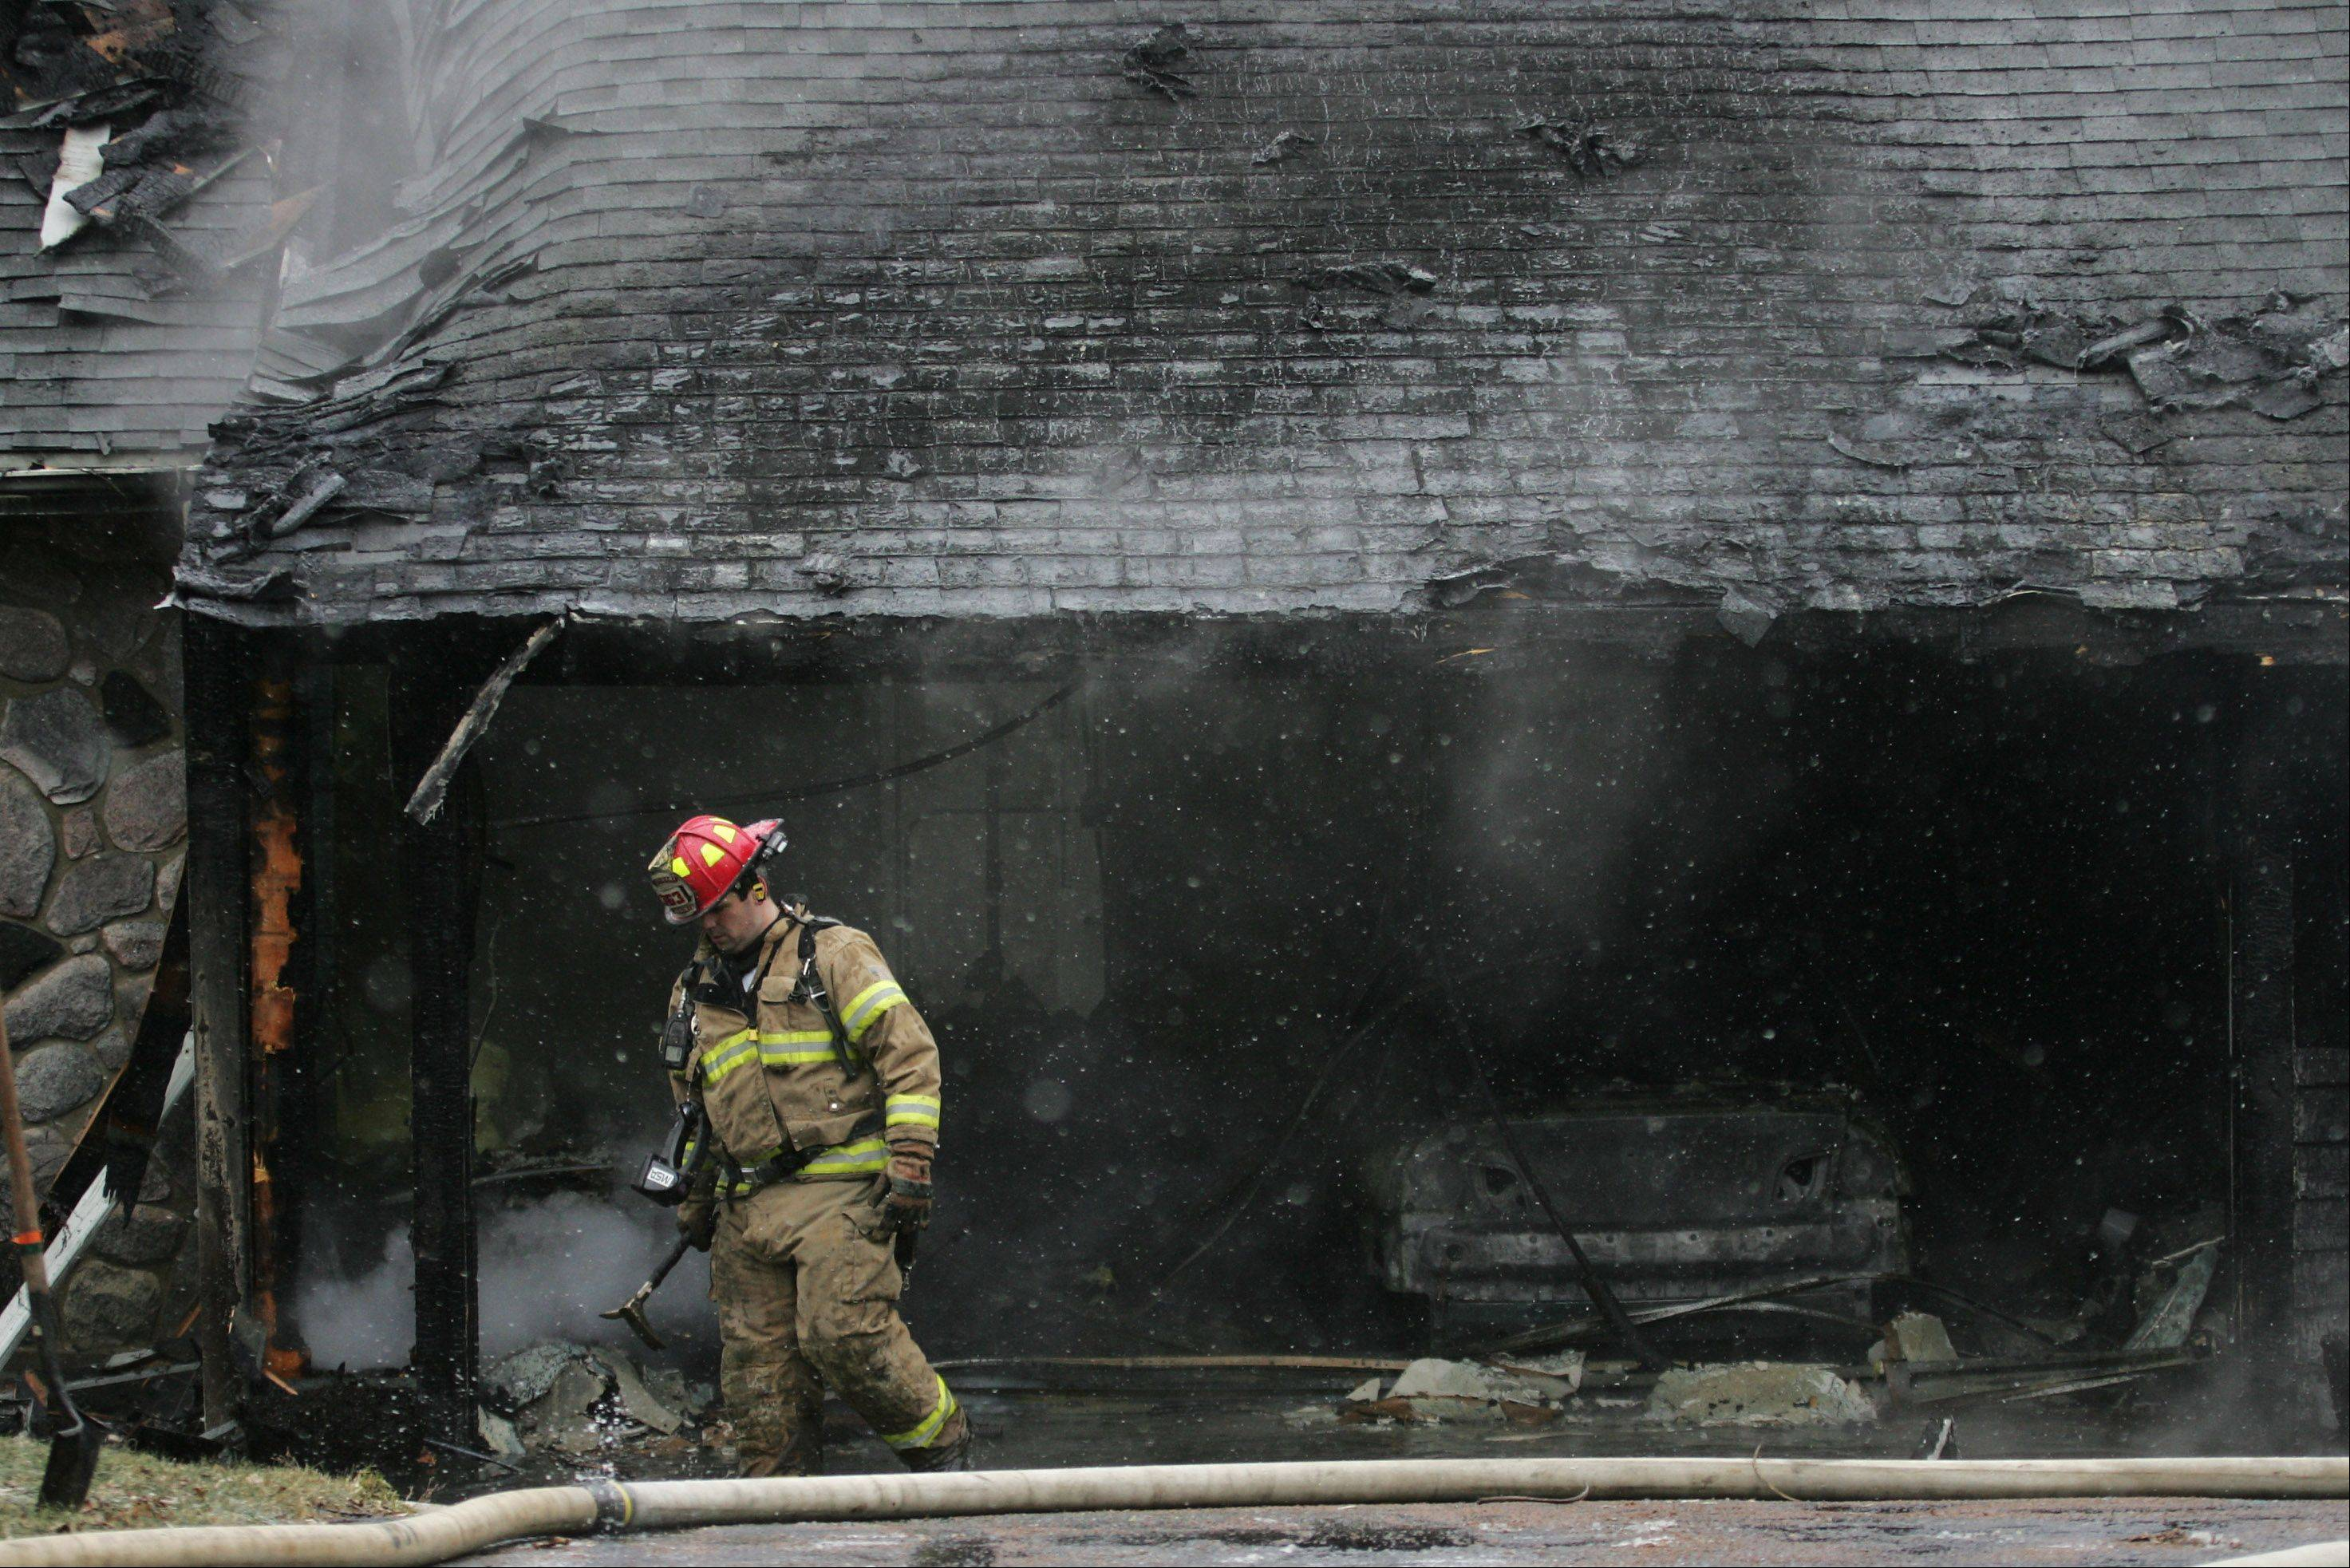 Firefighters battled a house fire Wednesday on the 26700 block of North Main Street in Wauconda. No one was injured in the fire that started in the garage and required assistance from 15 fire departments from Lake, Cook and McHenry counties.